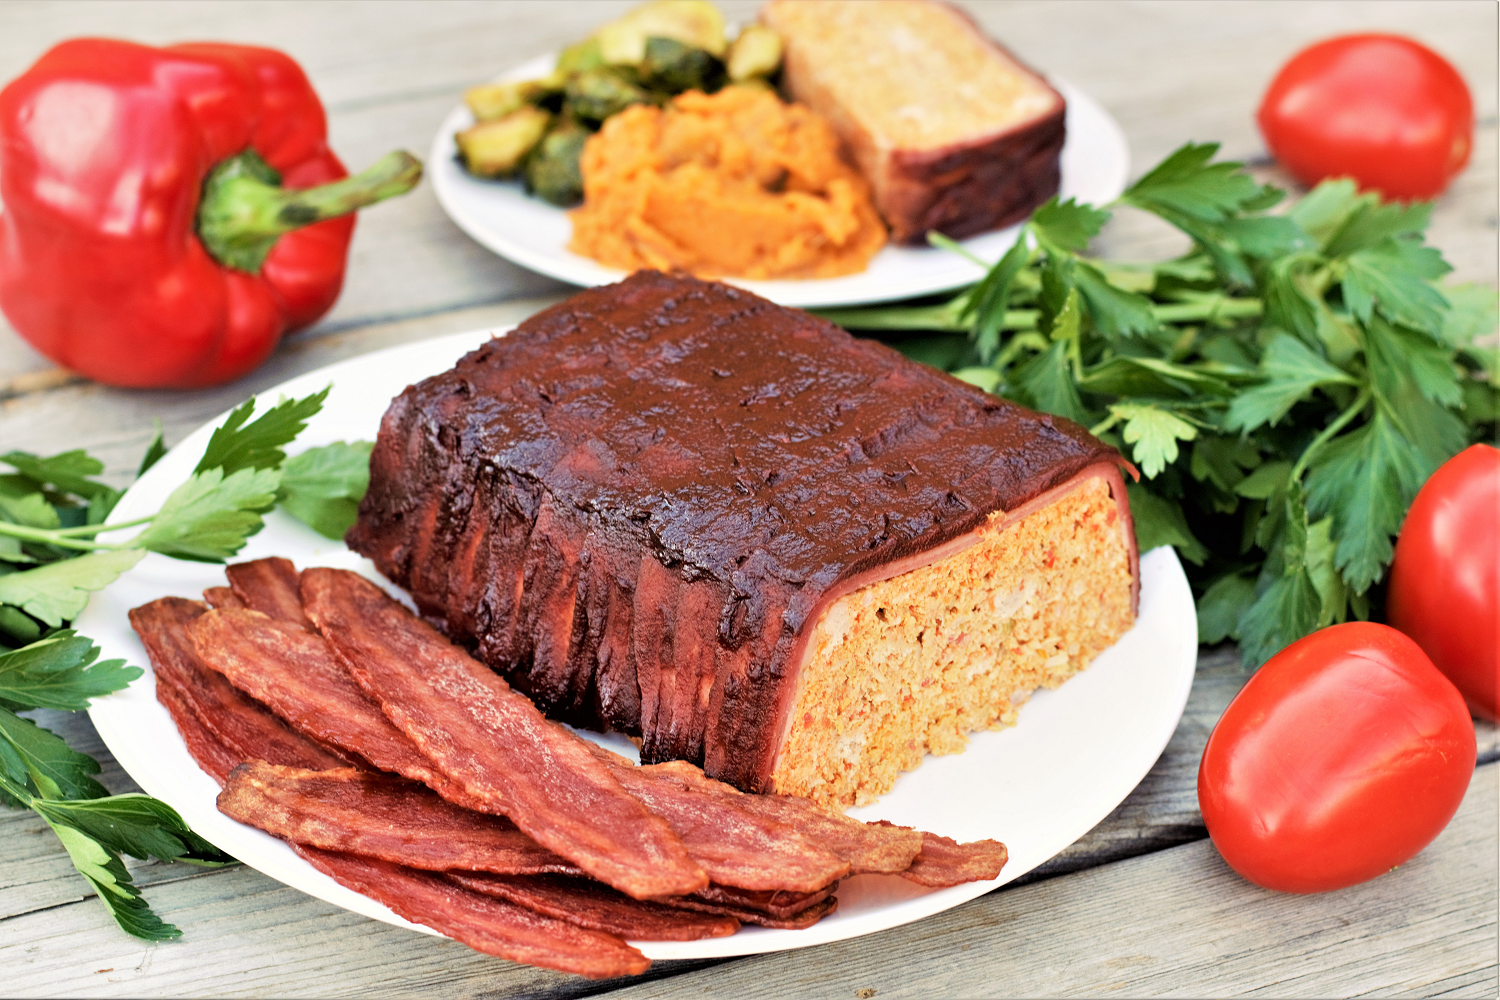 Healthy turkey meatloaf wrapped in turkey bacon is secretly stuffed with veggies, mixing cozy & familiar with healthy & fresh to satisfy all our comfort food cravings!